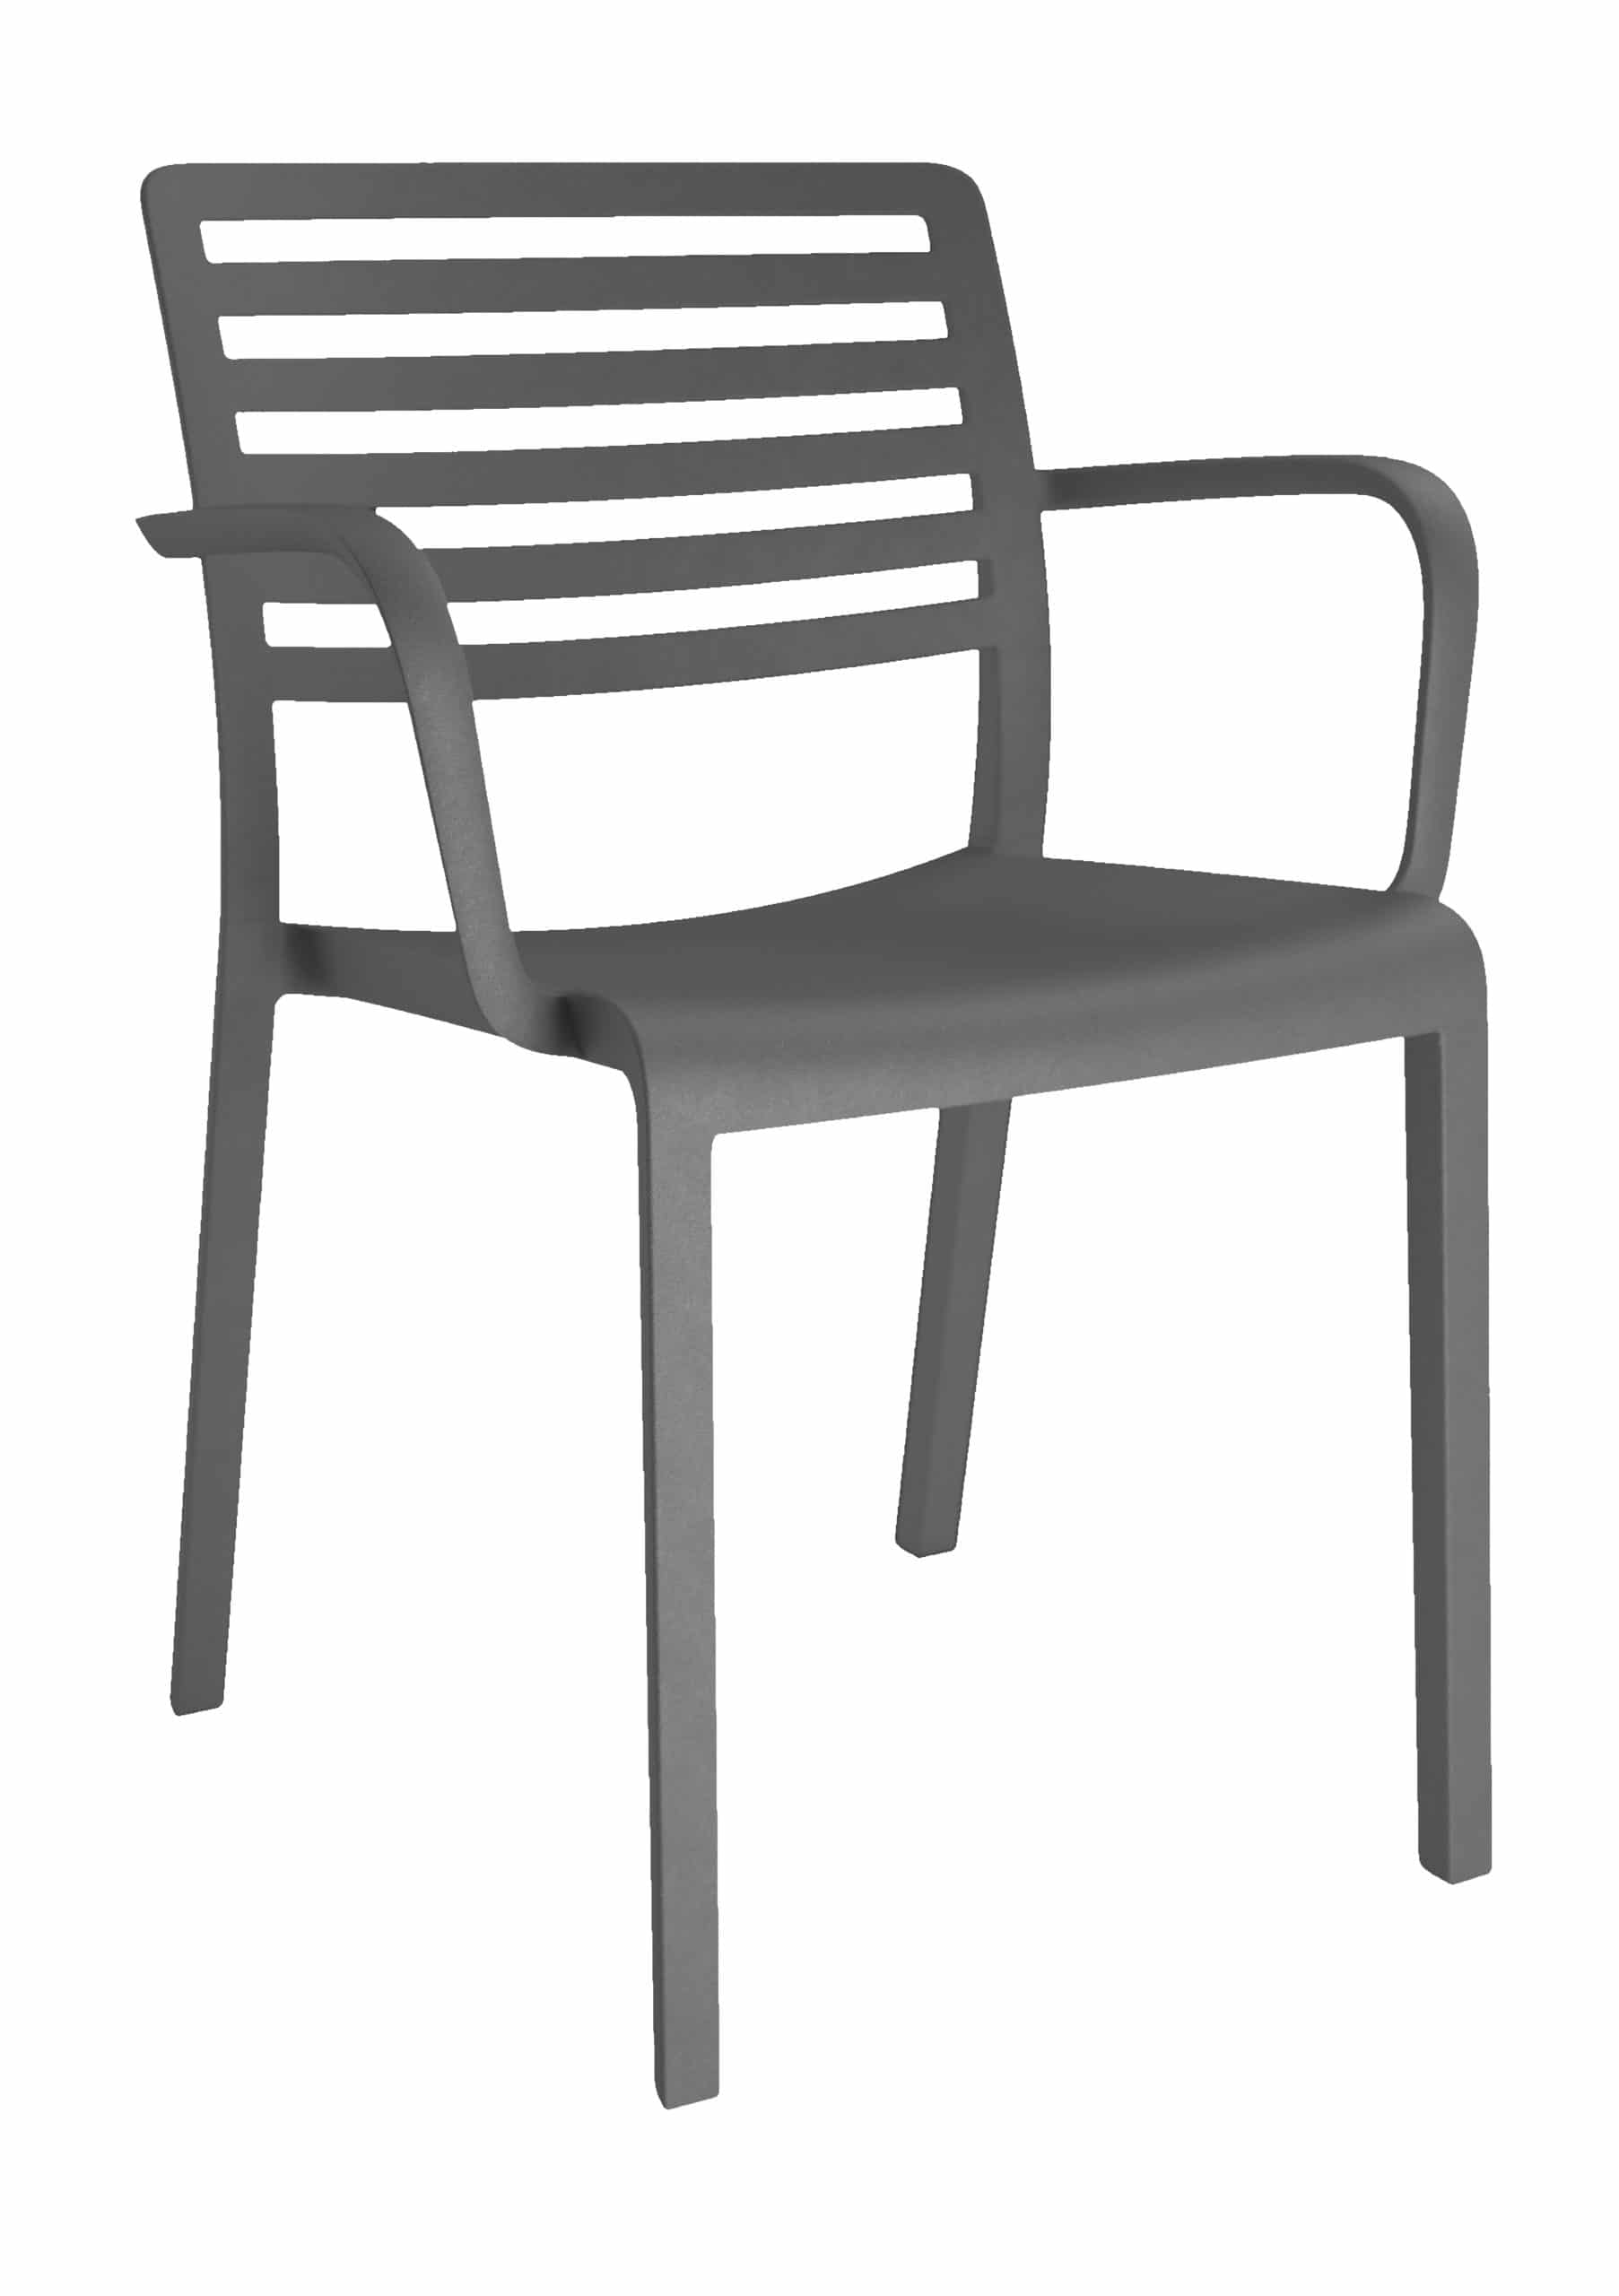 <p>Outdoor Furniture Contemporary Collection – Amarillo Armchair – Black.</p> <p> </p> <p>Chair designed for indoor and outdoor use available in a variety of colours, capturing essential features such as lightness, stability, functionality, ergonomics and care for the environment. Comfort, Modernity, style and durability</p>